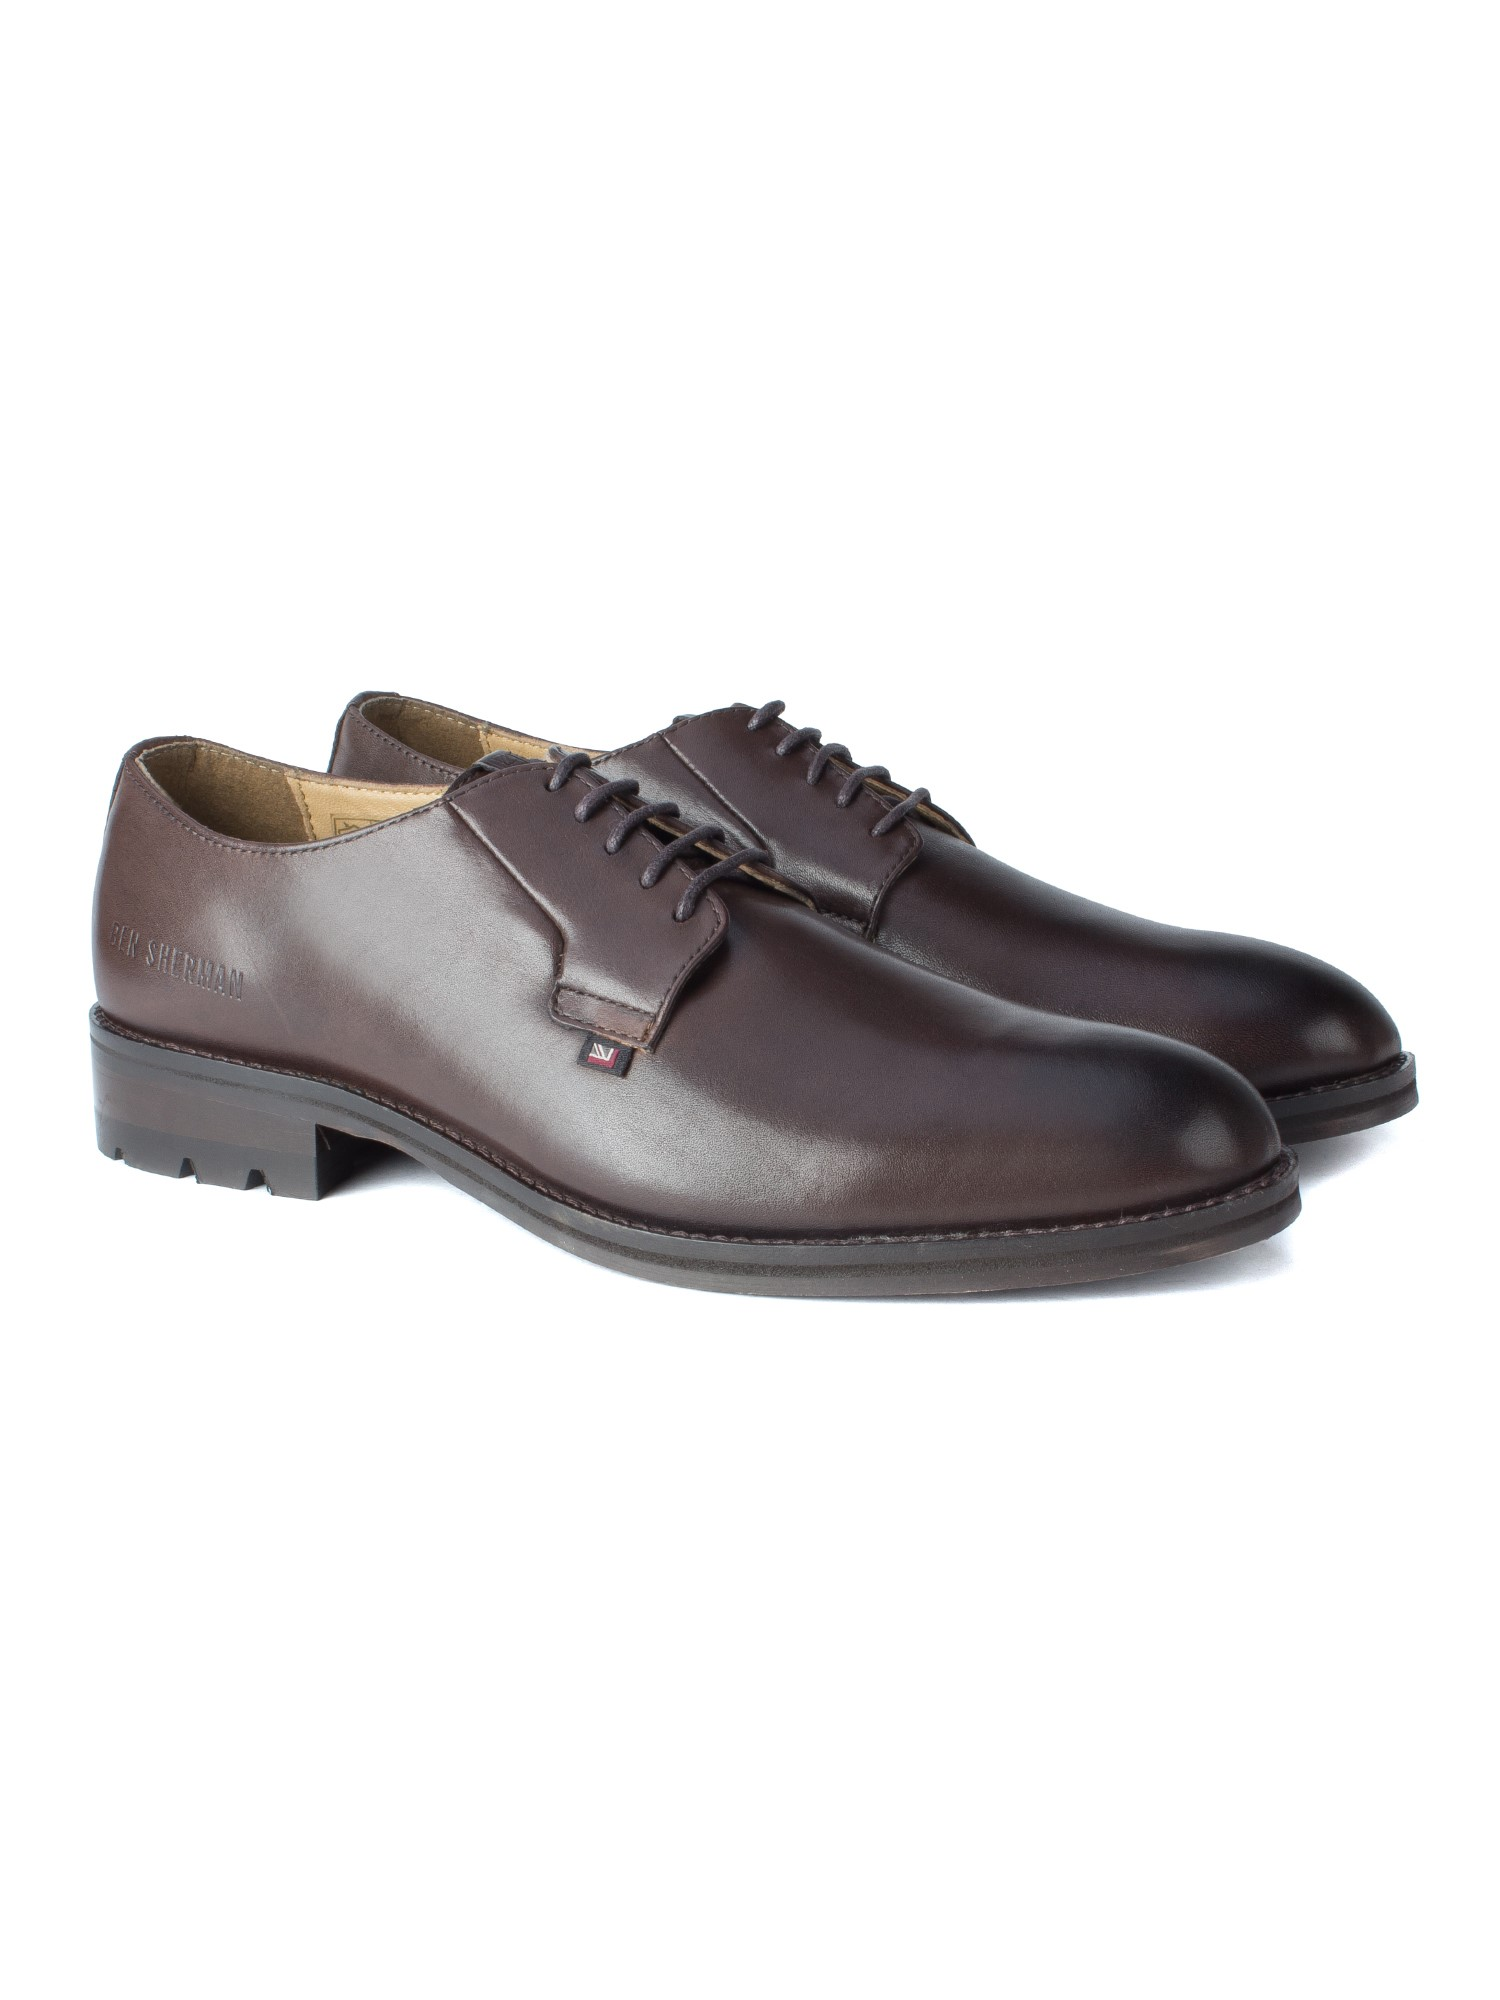 Ben Sherman Brown Supermarine Round Toe Shoe